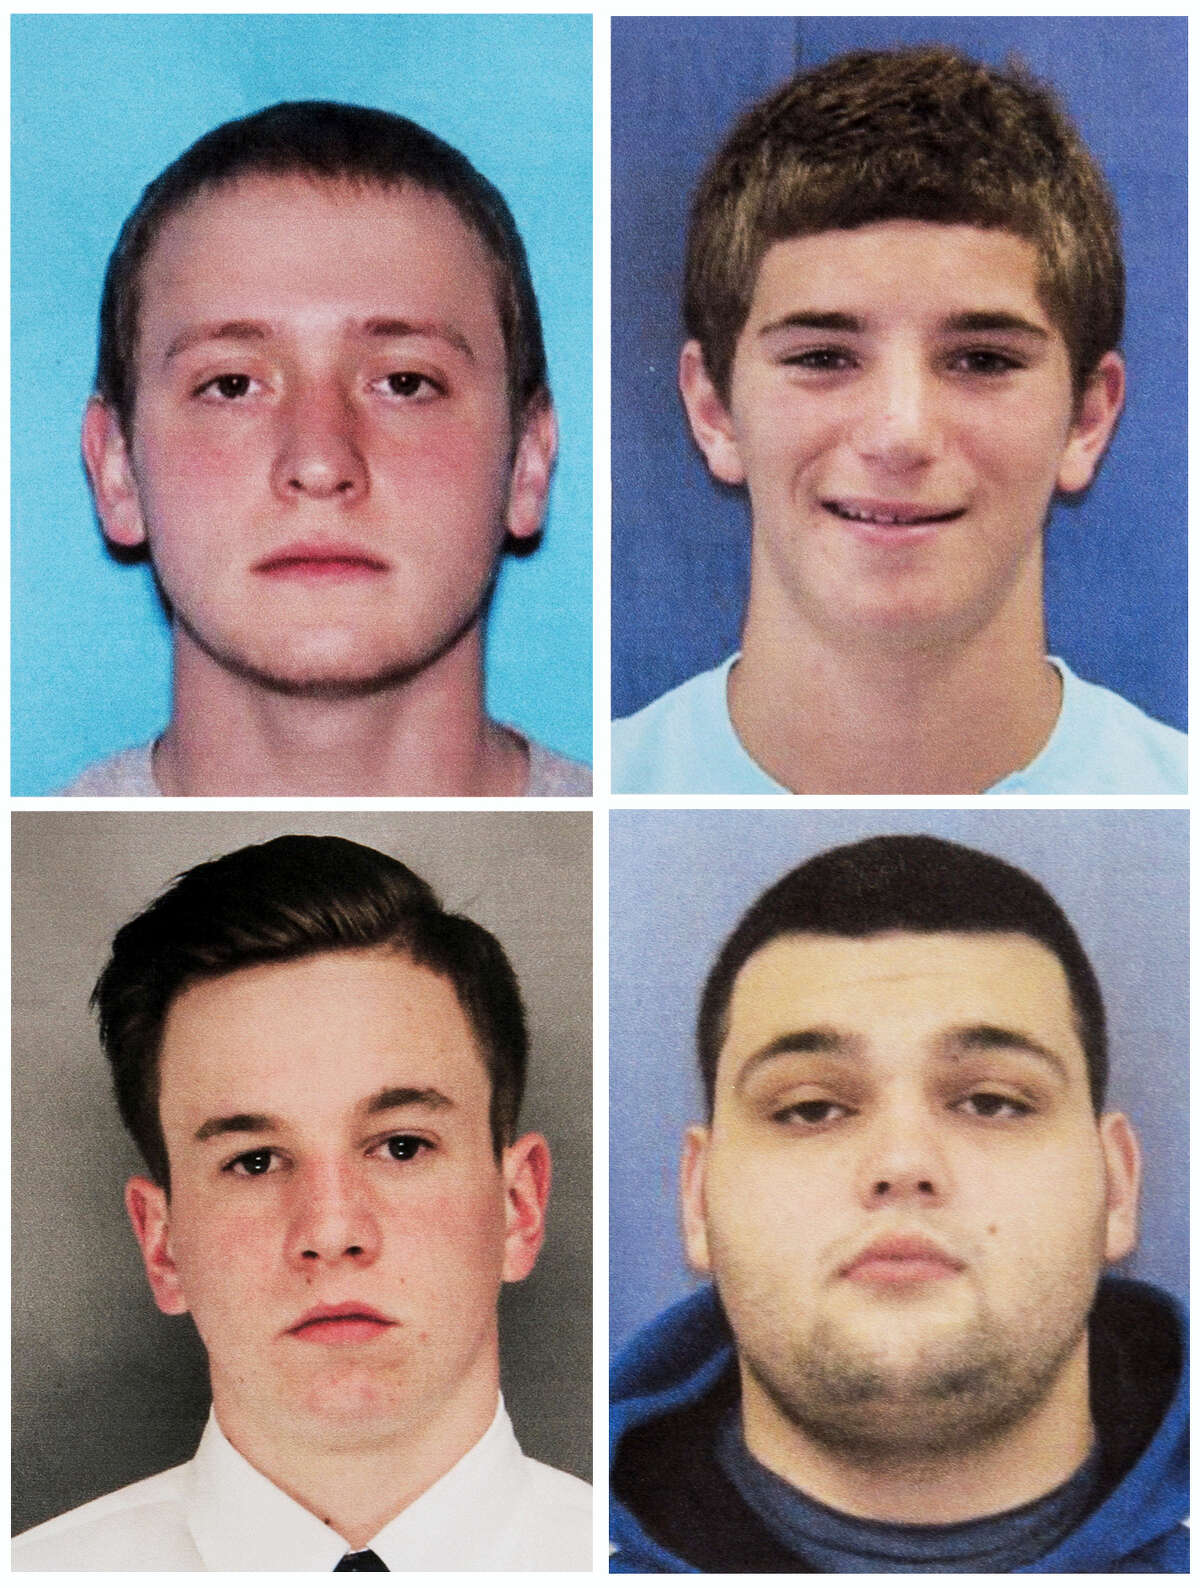 This combination of undated photos provided by the Bucks County District Attorney's Office shows four men who went missing last week: Tom Meo, top left; Jimi Tar Patrick, bottom left; Dean Finocchiaro, top right; and Mark Sturgis, bottom right. Cosmo DiNardo, a 20-year-old linked to a Pennsylvania farm at the center of a search for the four missing men, was arrested Wednesday on charges he tried to sell one man's car after he went missing, authorities said in announcing the first big break in the case.